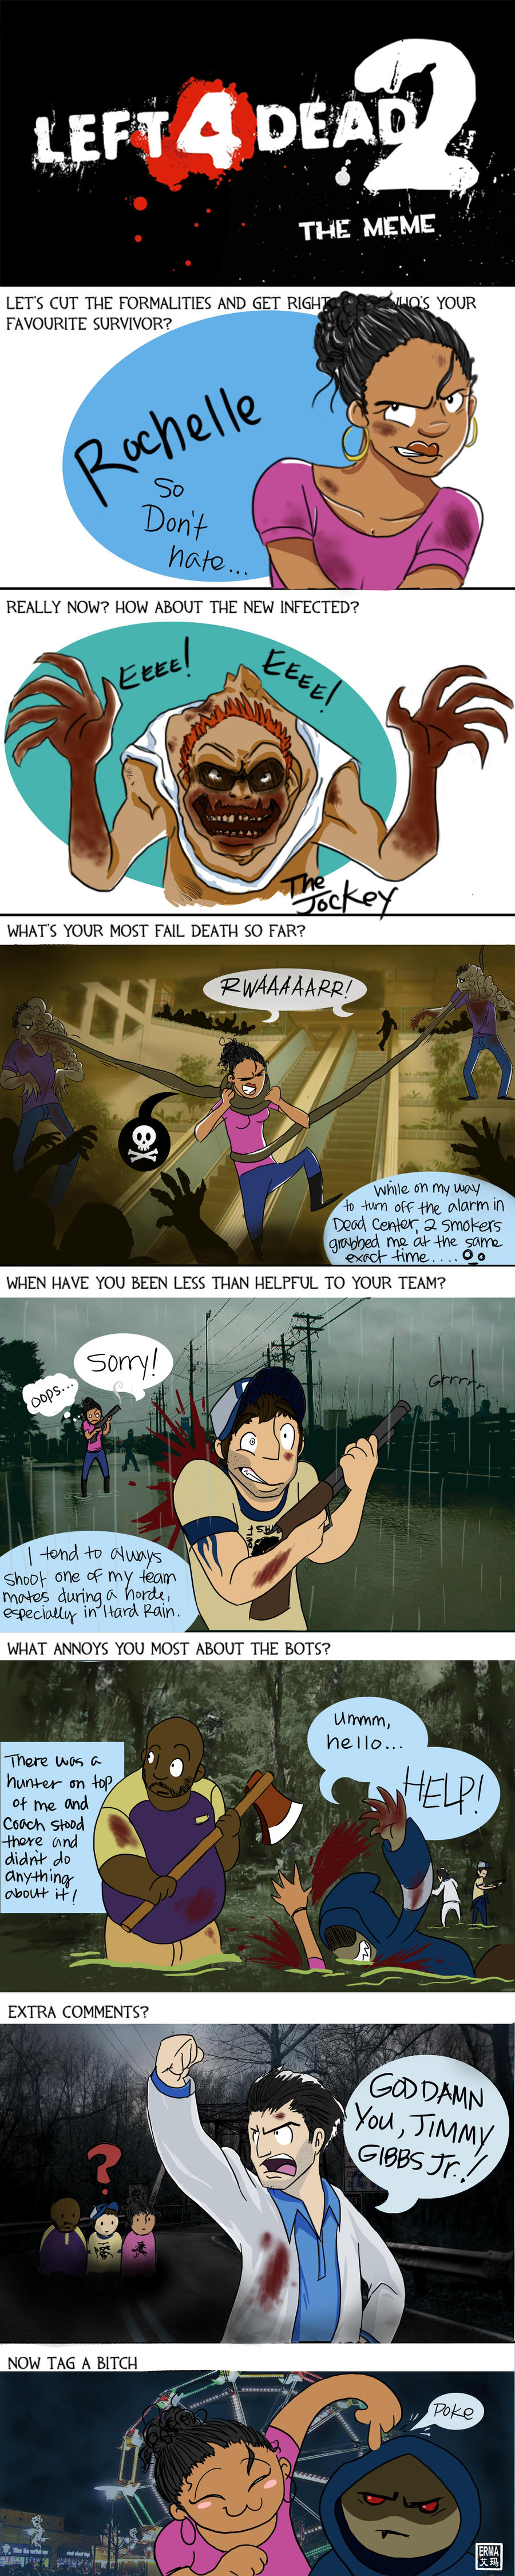 L4d2 Meme by Blu-Bear on DeviantArt